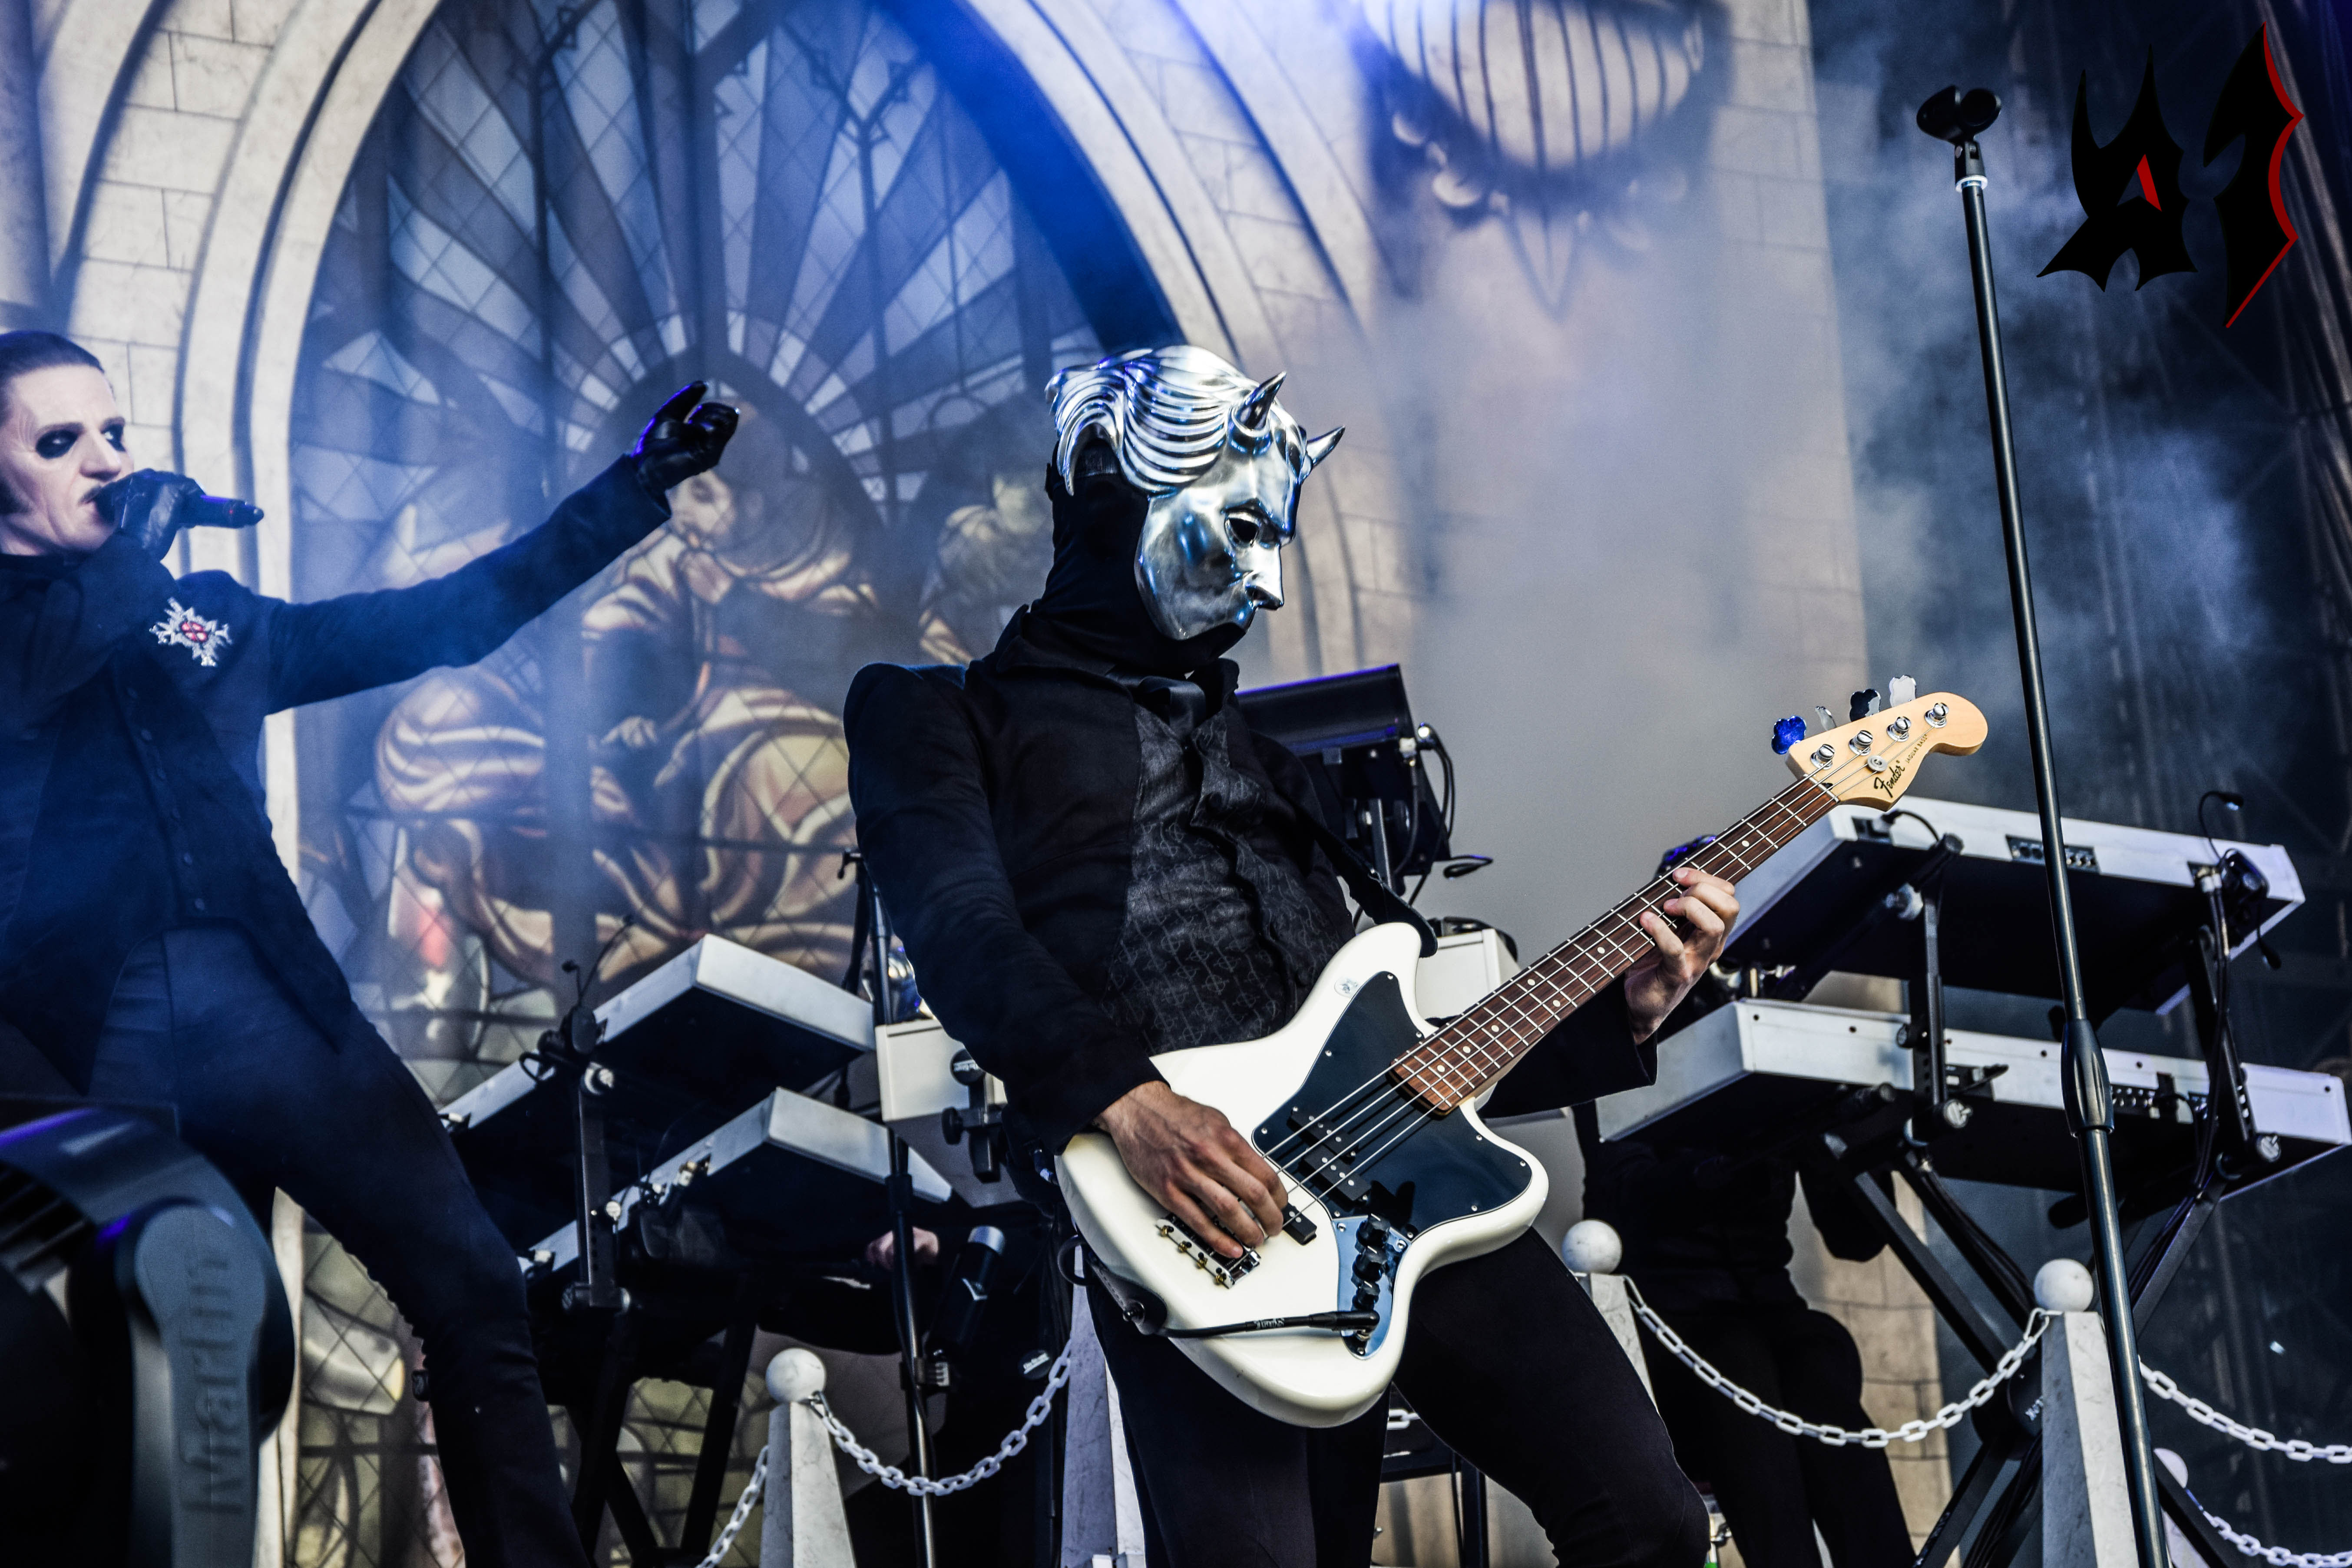 Donwload 2018 – Day 1 - Ghost 20